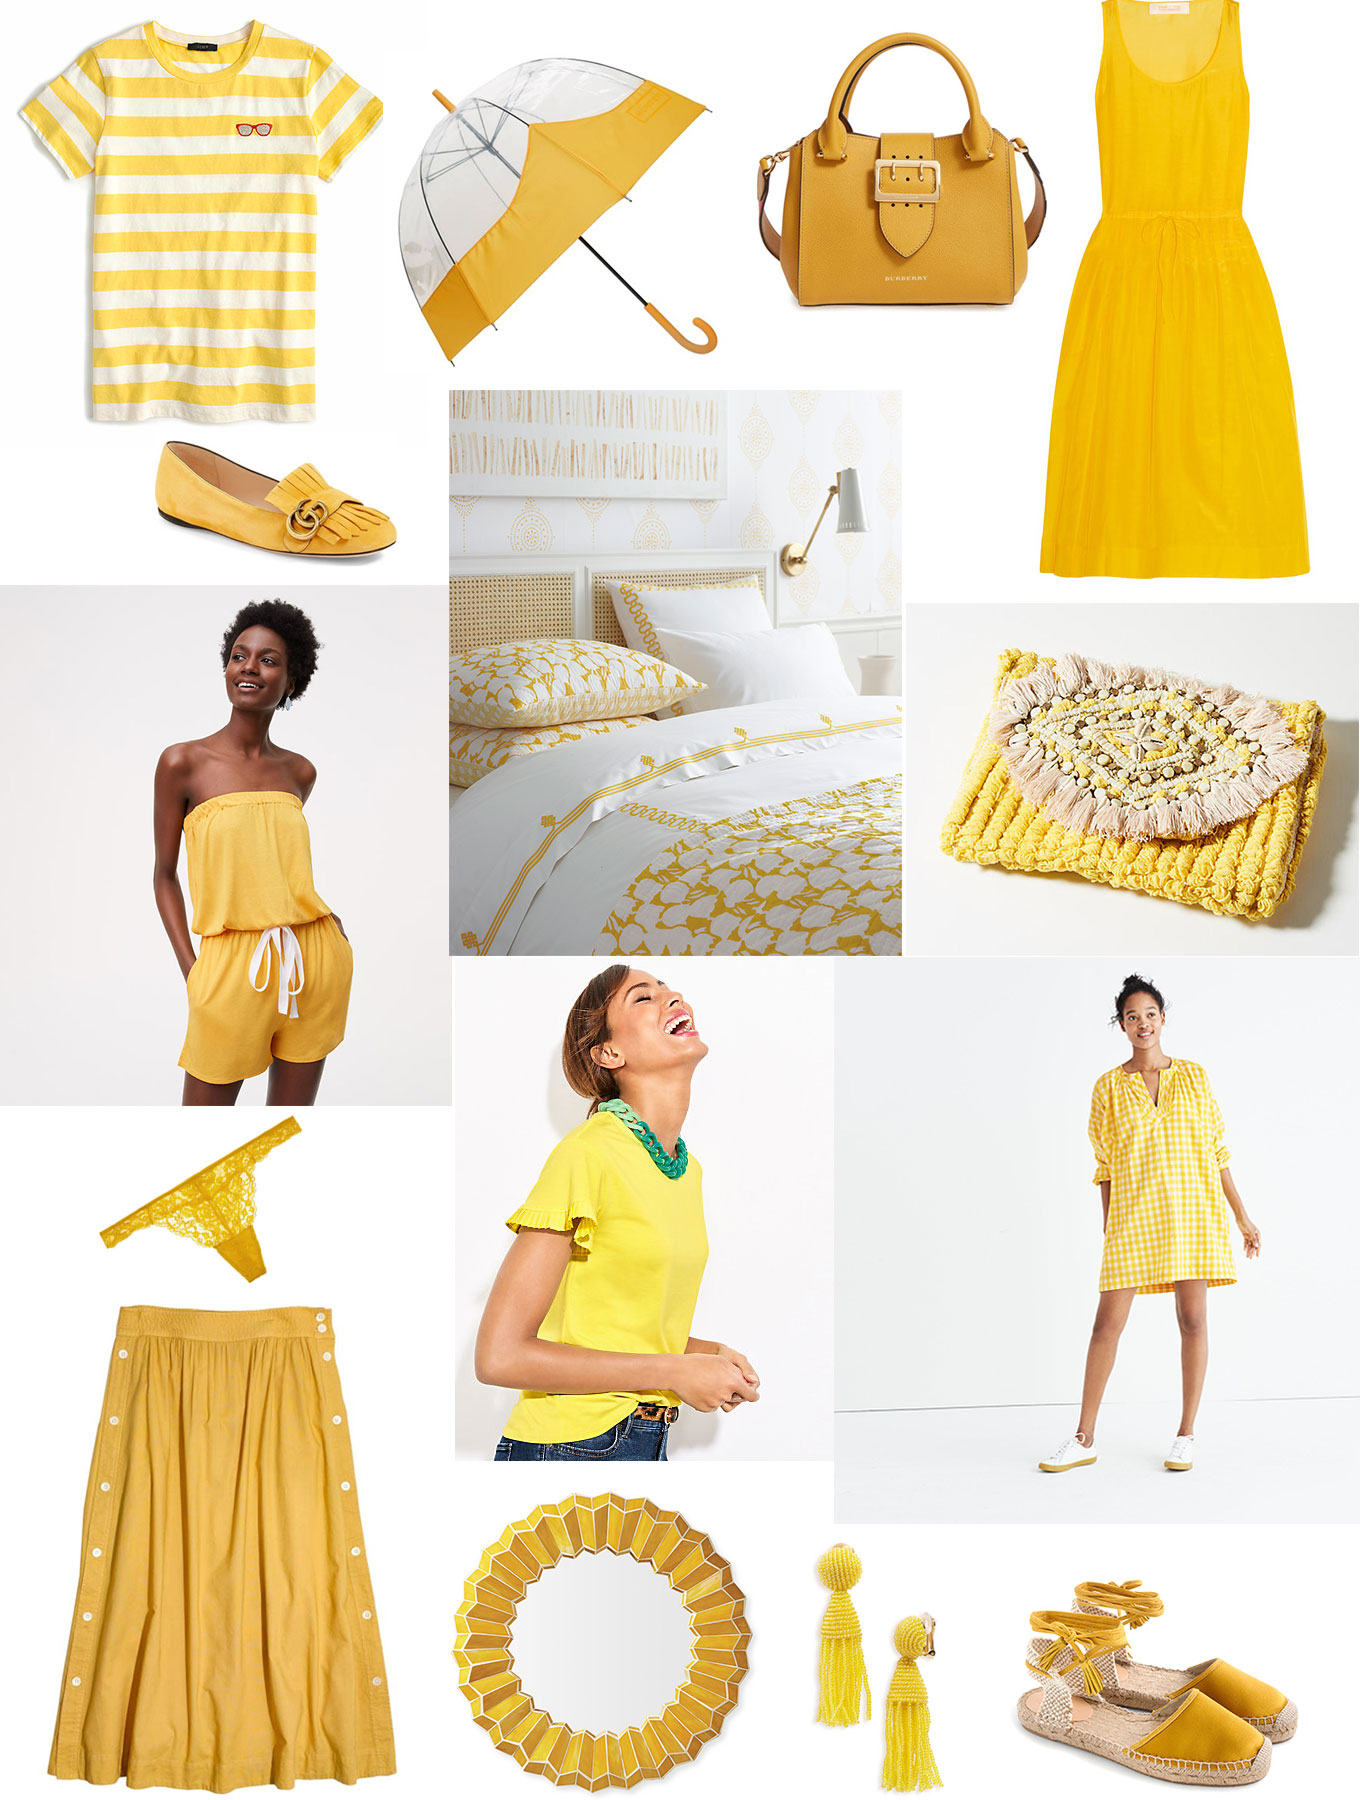 Nothing like some happy yellows to brighten your mood and lift your spirits, take a look at all these bright sunshine colored picks on Ridgely's Radar.